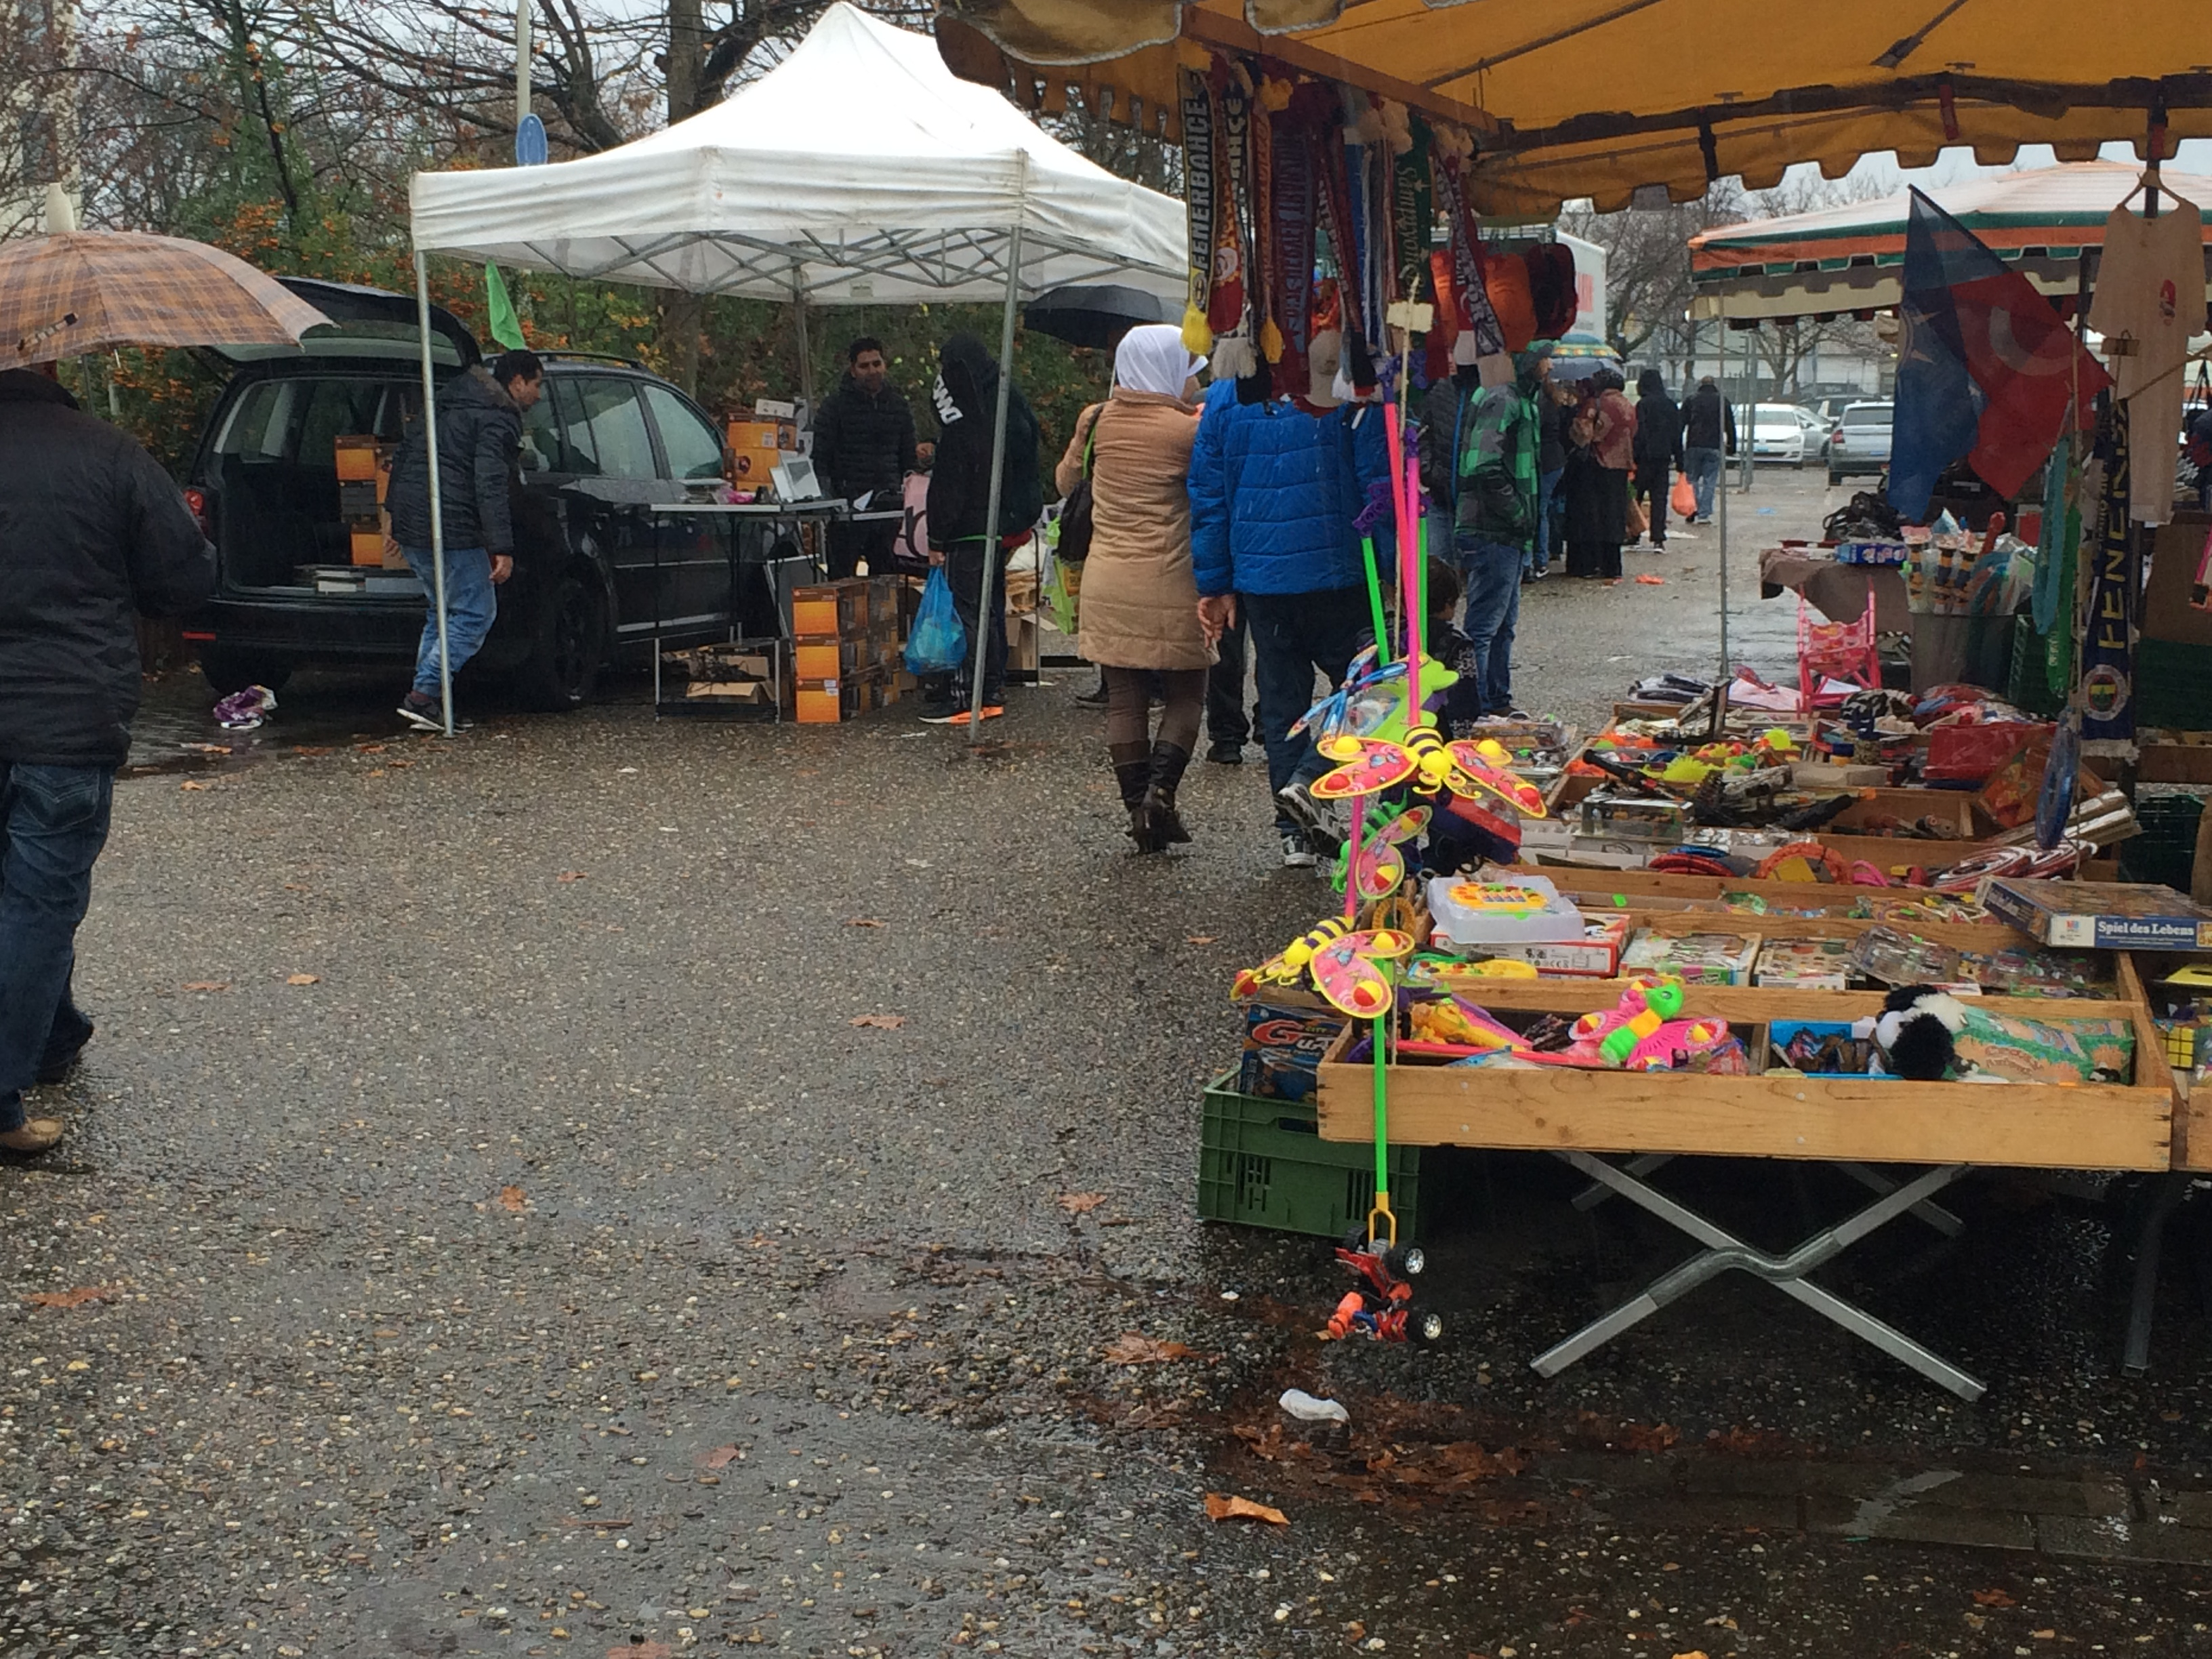 This market in Mannheim, Germany, is popular among refugees because it sells used items, and items discounted because they are not selling well in stores, Nov. 22, 2015.